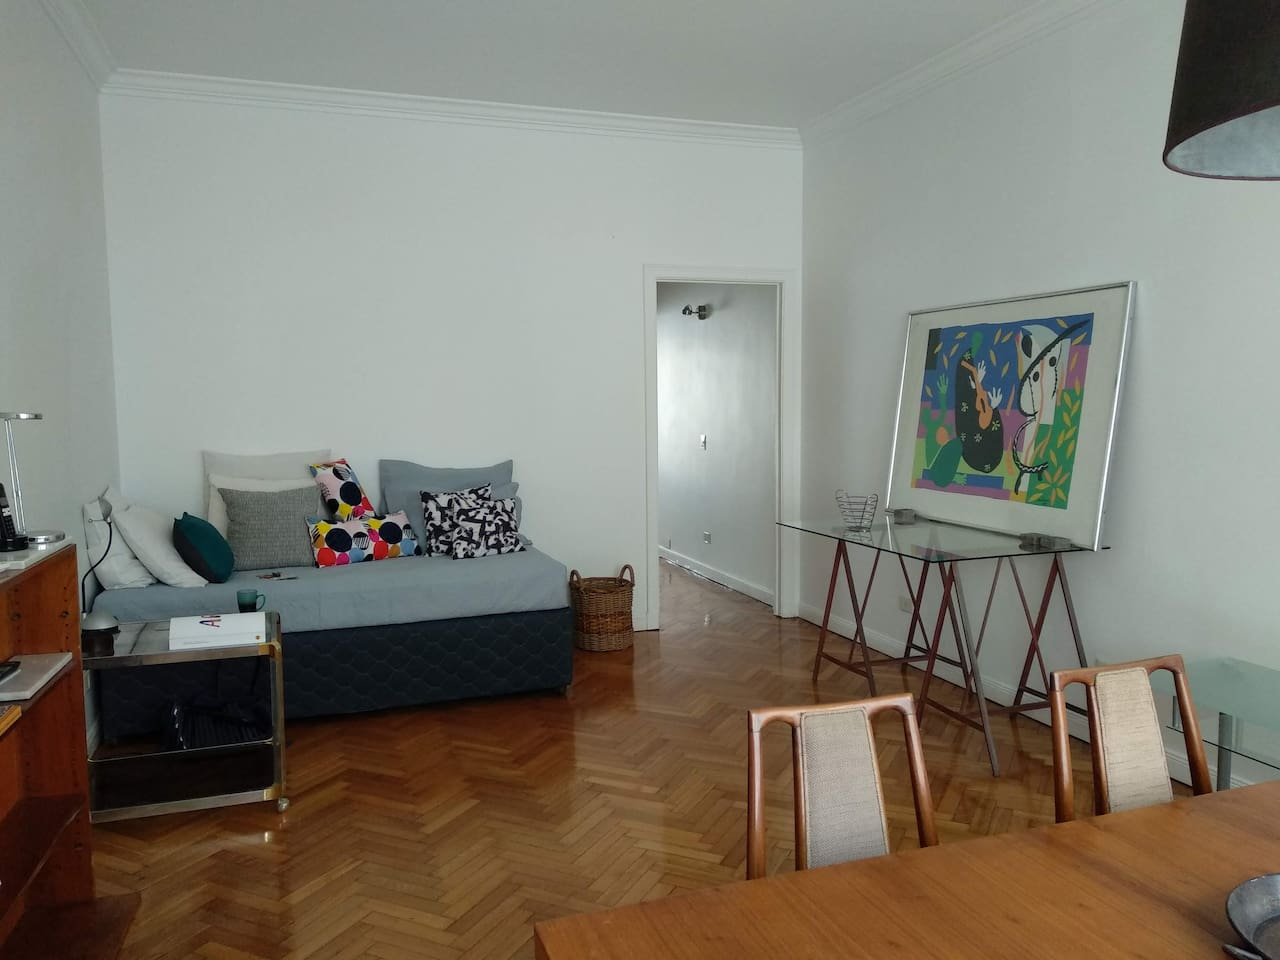 The spacious, luminous and quiet living / dining room is accentuated with modern artwork and details.